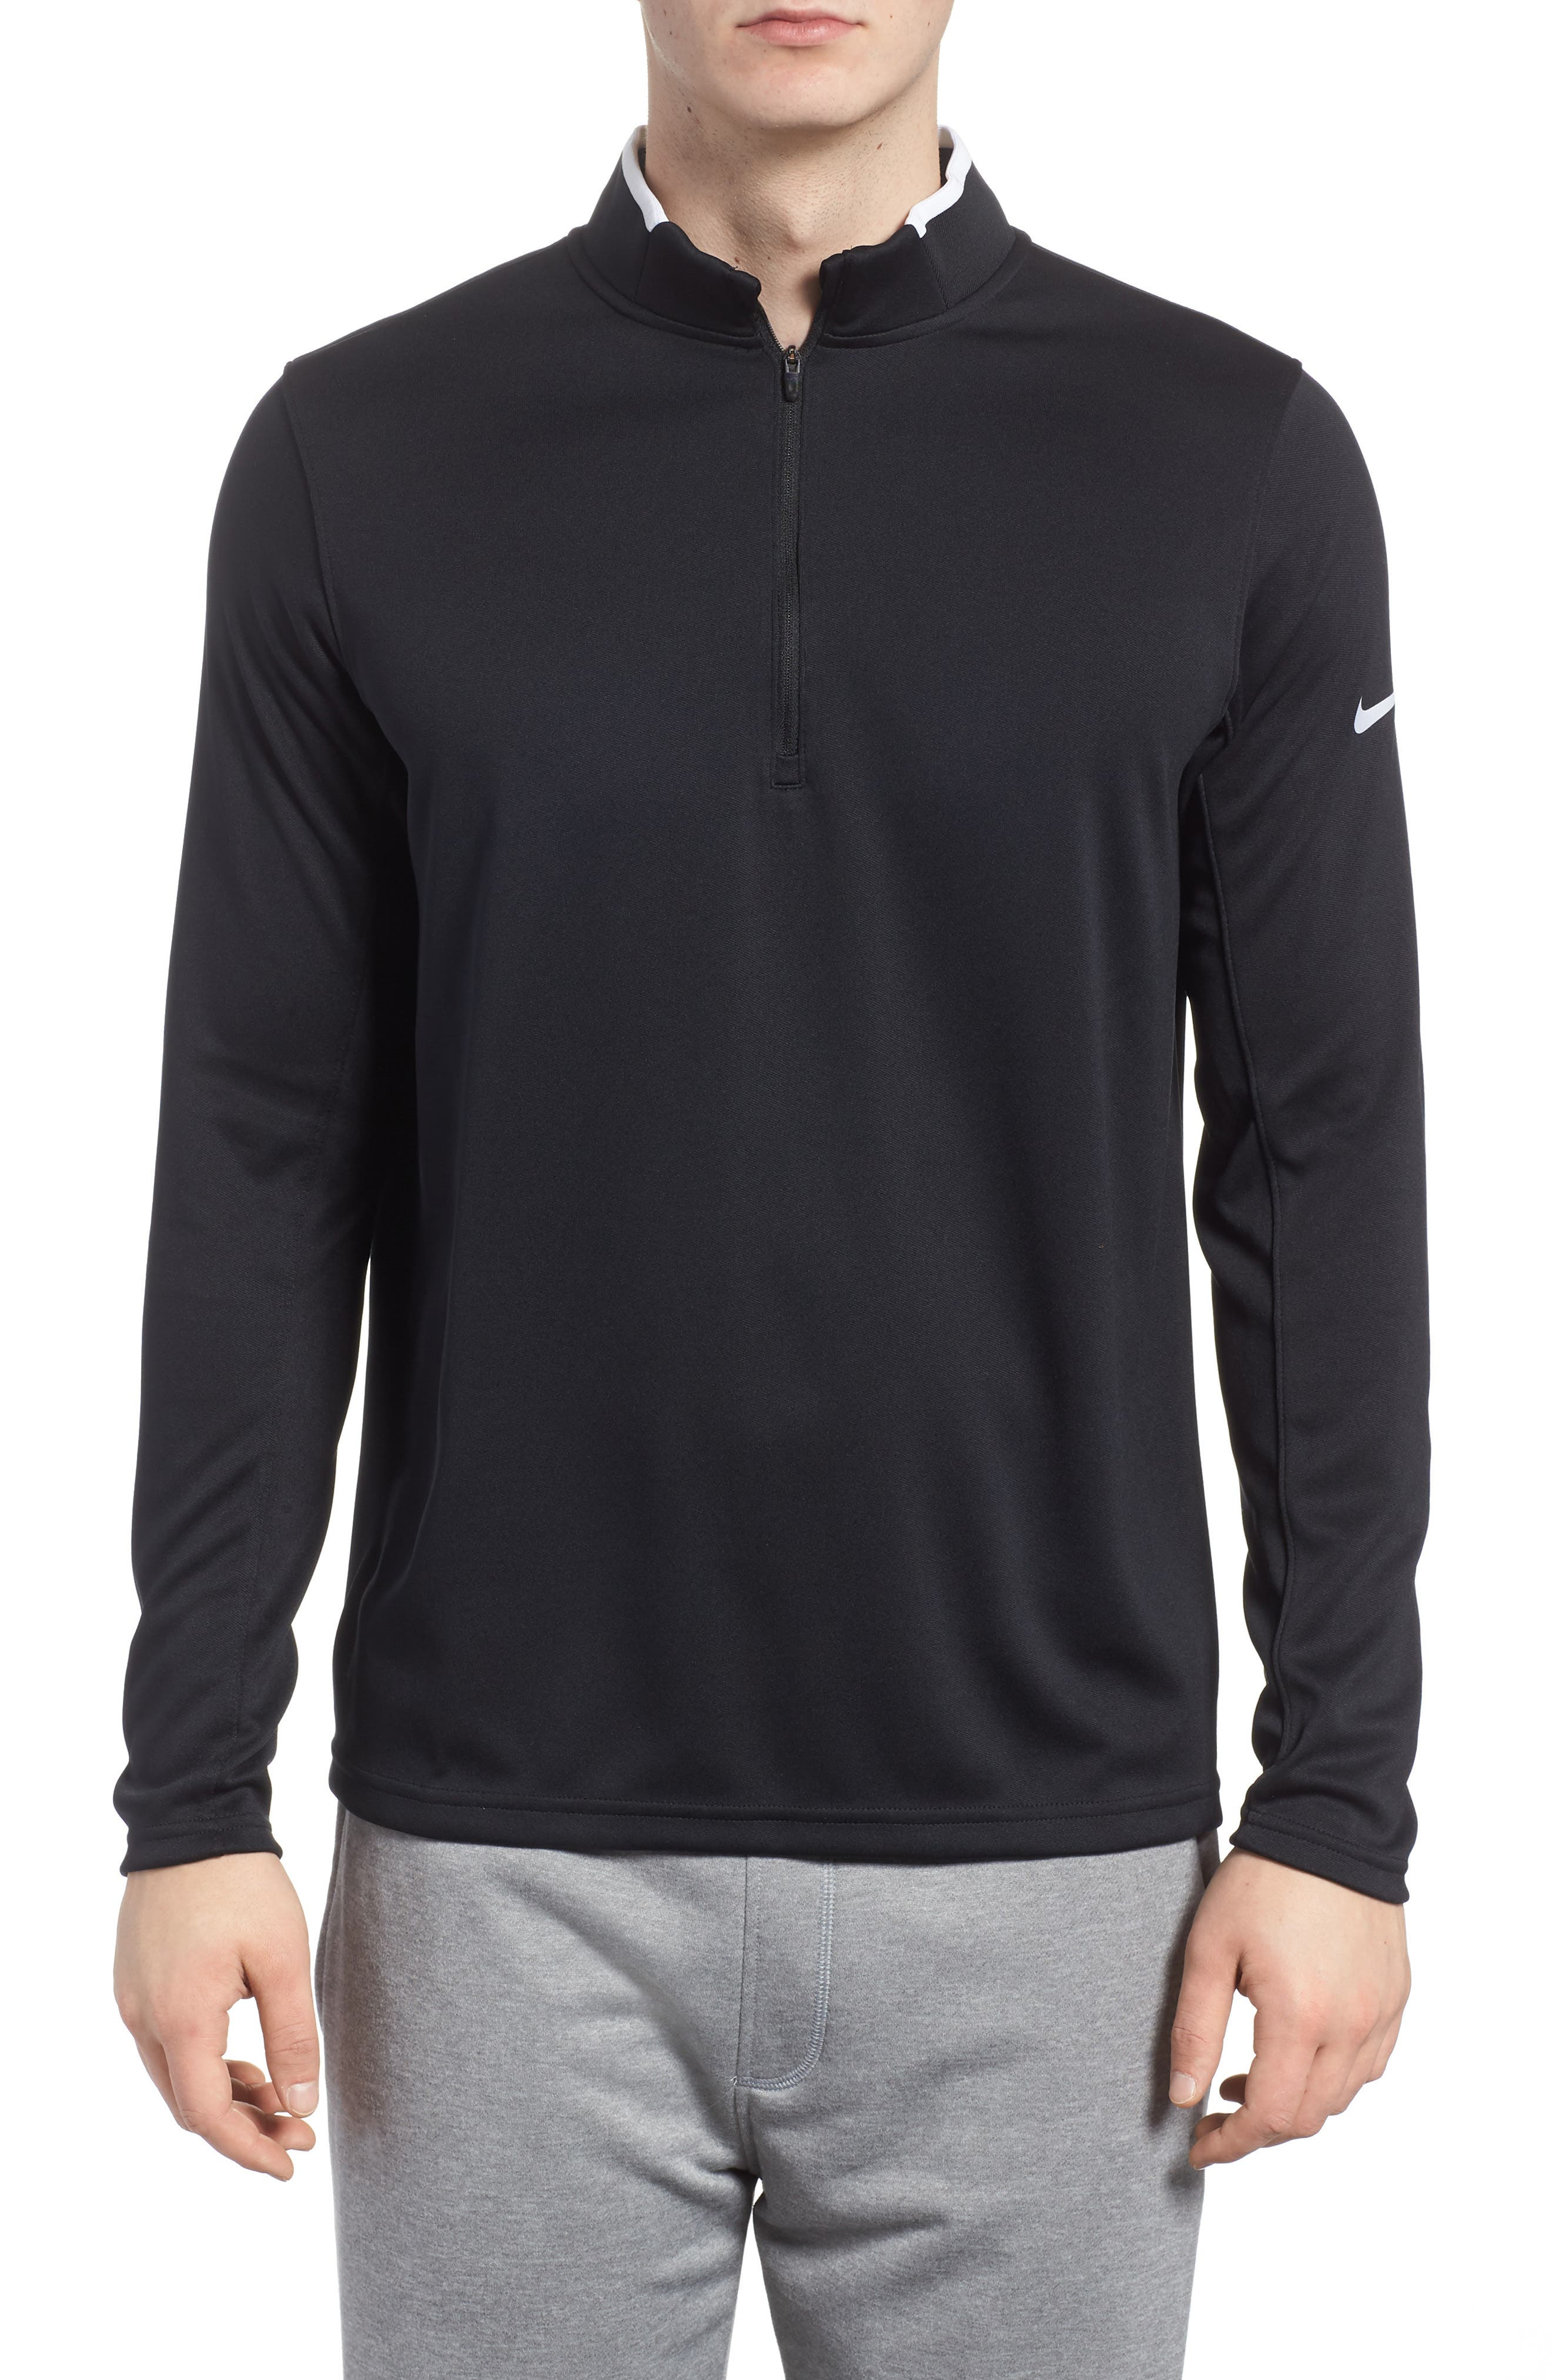 Dry Core Half Zip Pullover,                             Main thumbnail 1, color,                             Black/ White/ White